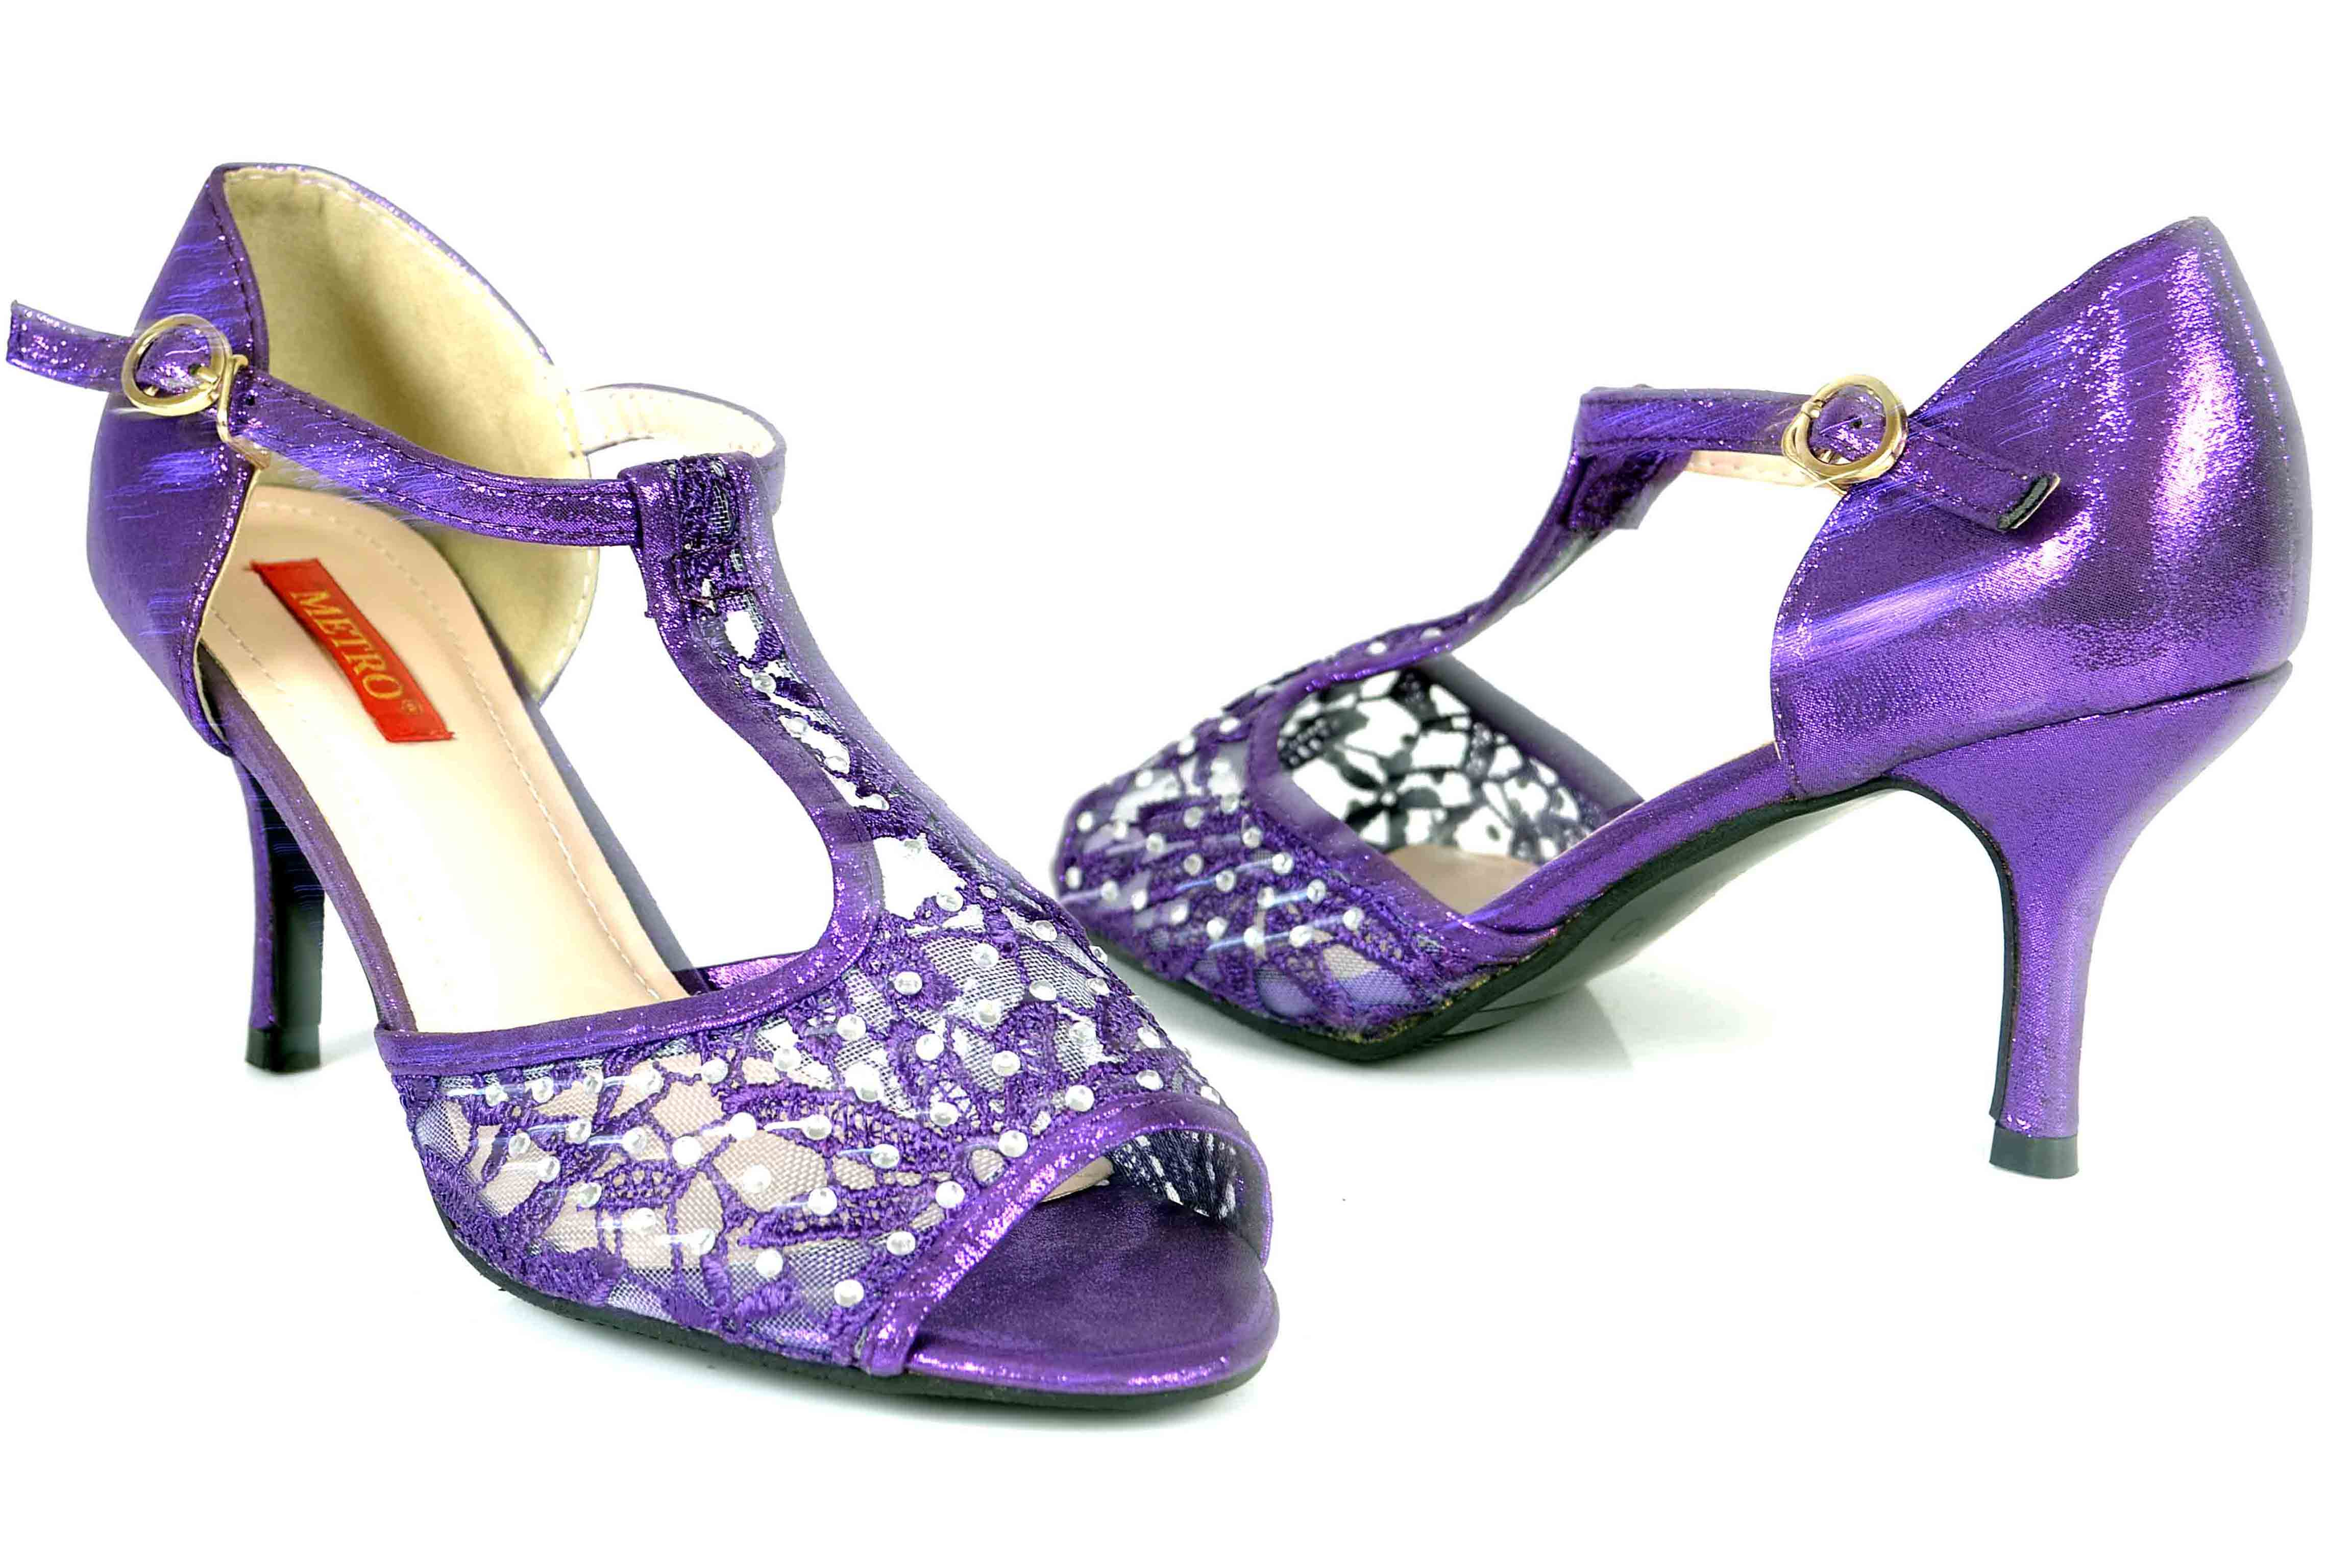 Metro-Shoes-Spring-Summer-Collection-2015-2016 (32)